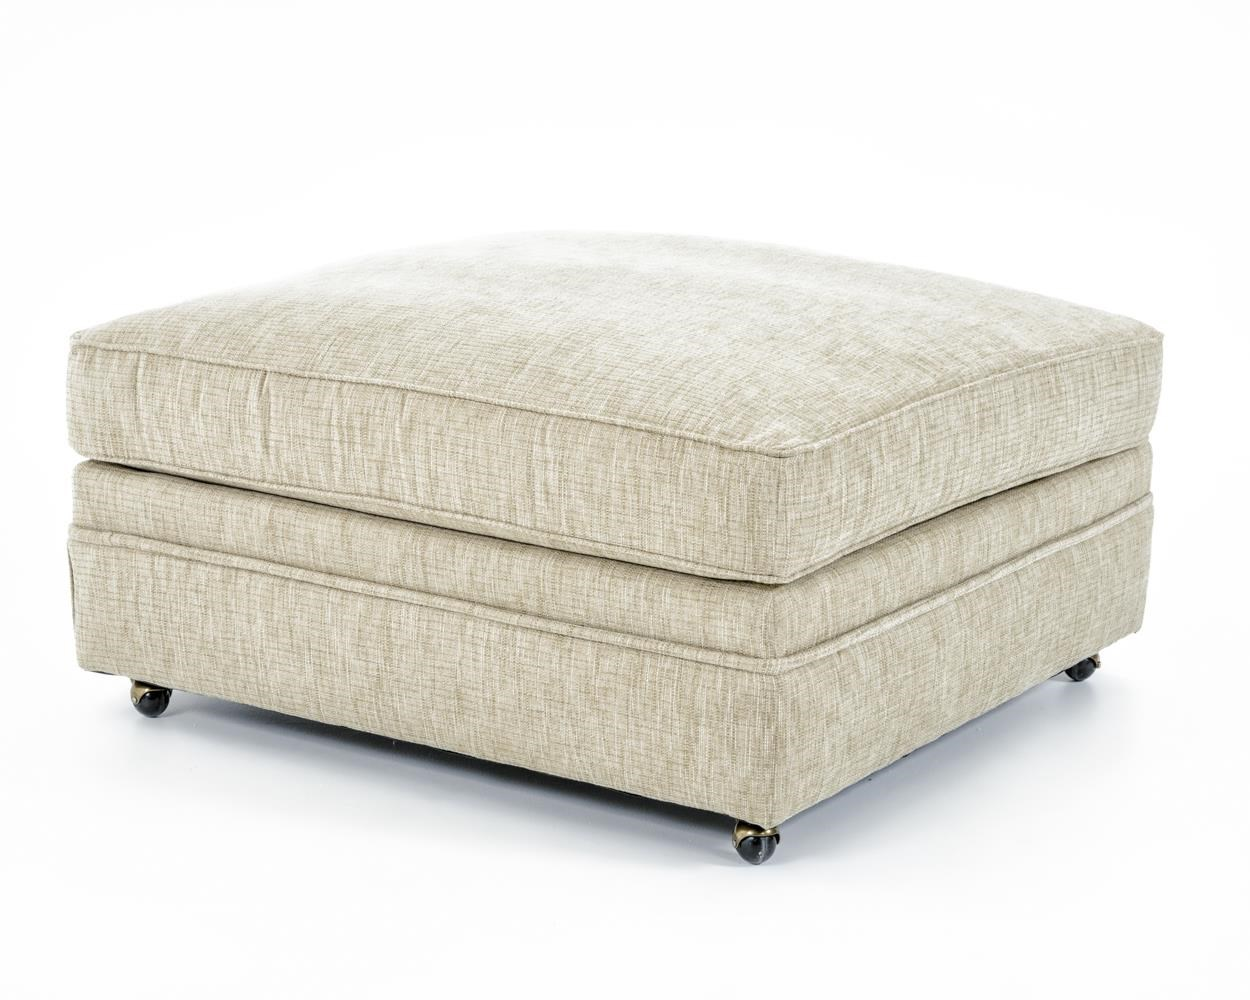 7100 Ottoman by Huntington House at Baer's Furniture